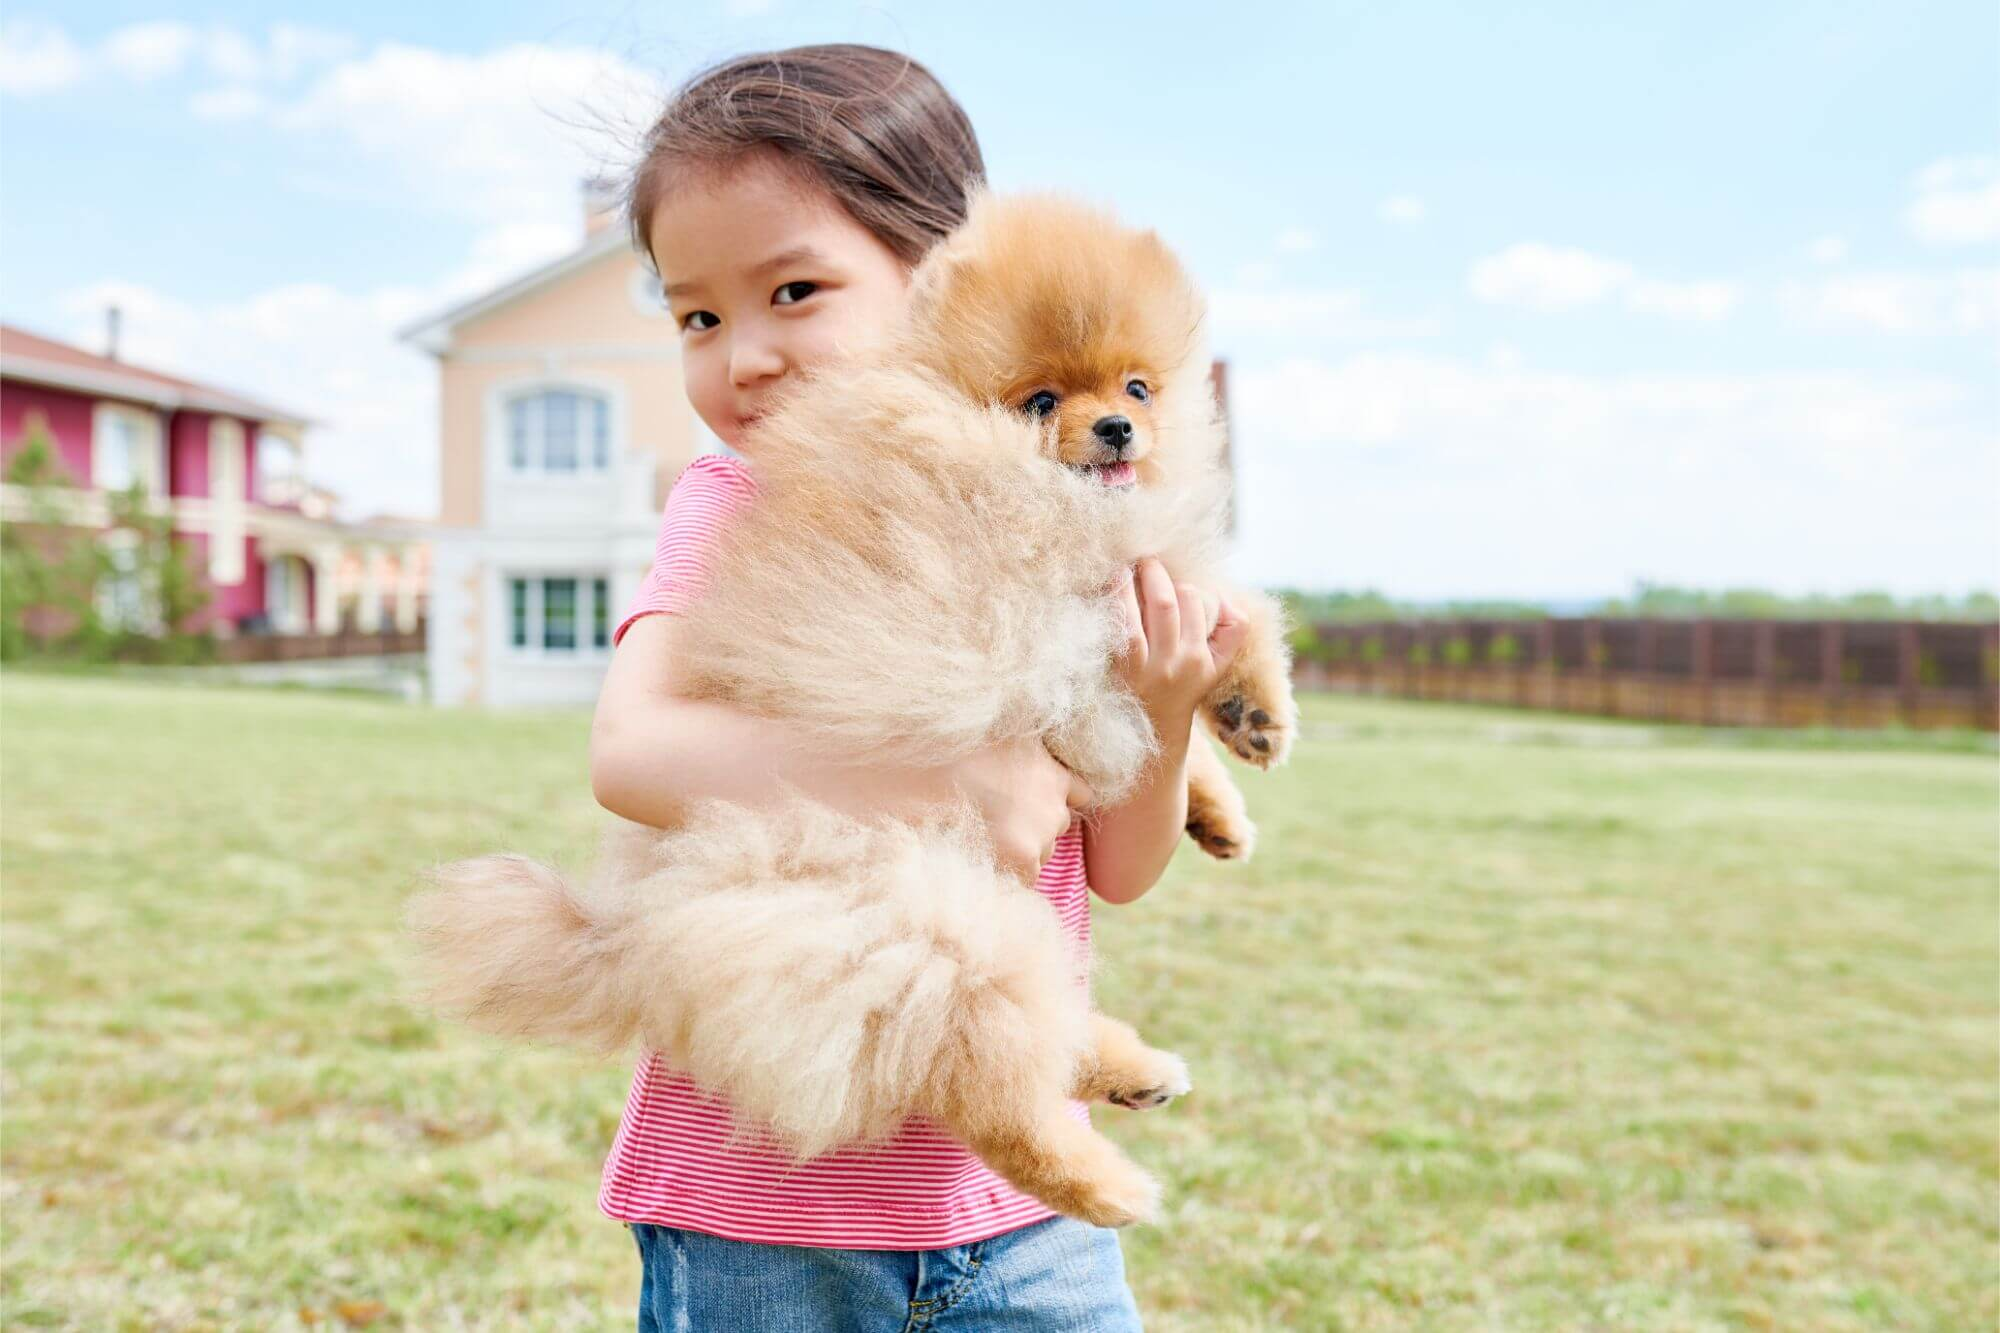 Petowners 2 - What pet owners should keep in mind when moving to an estate